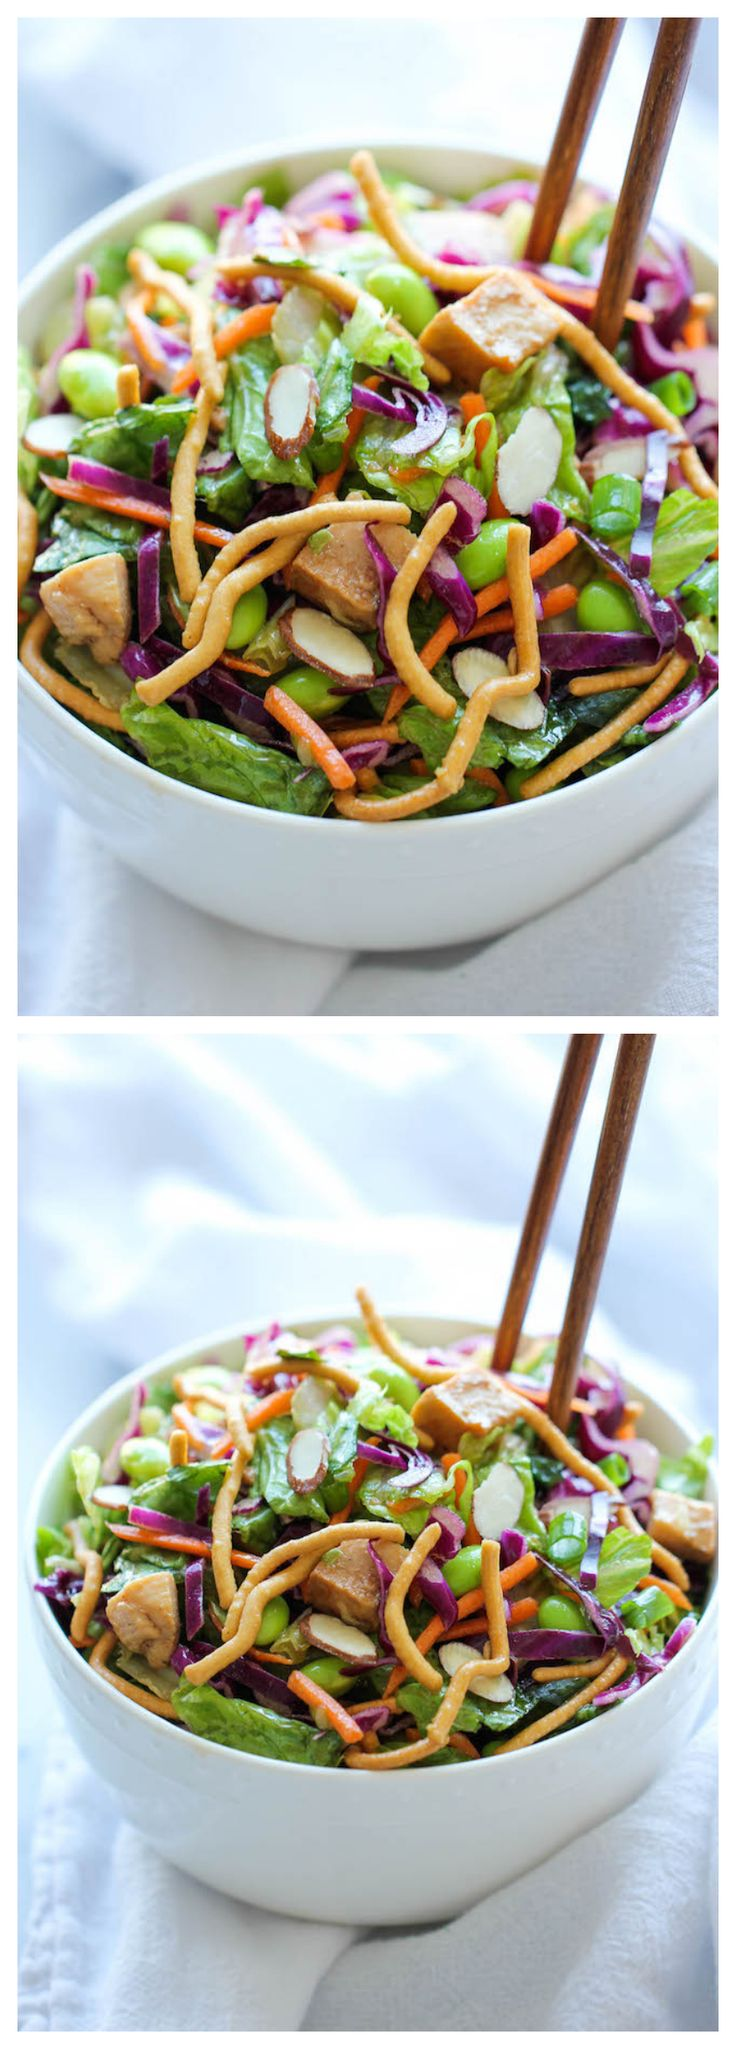 Chinese Chicken Salad - Restaurant quality that you can easily make right at home, except it's healthier and a million times tastier!  I would change out the sugar for coconut sugar and use tamari instead of soy sauce.  Will make it even healthier than posted